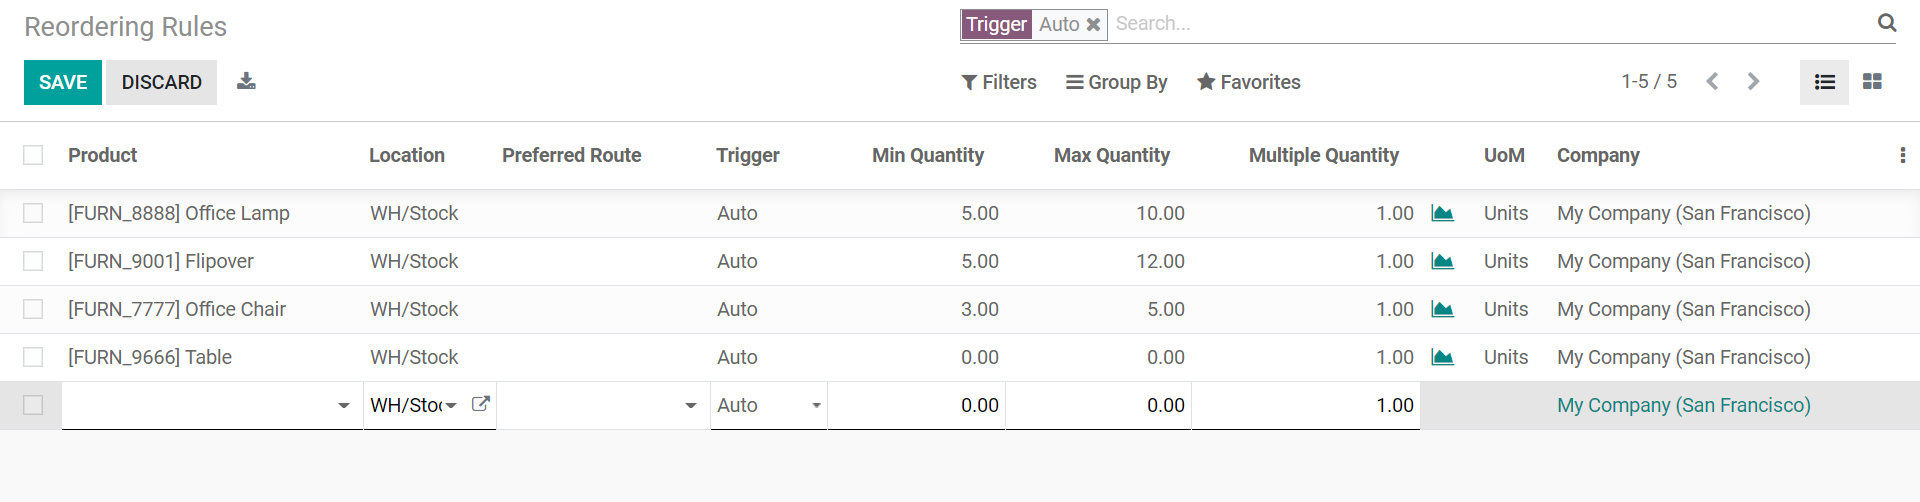 replenish-stock-with-odoo-reordering-rules-cybrosys